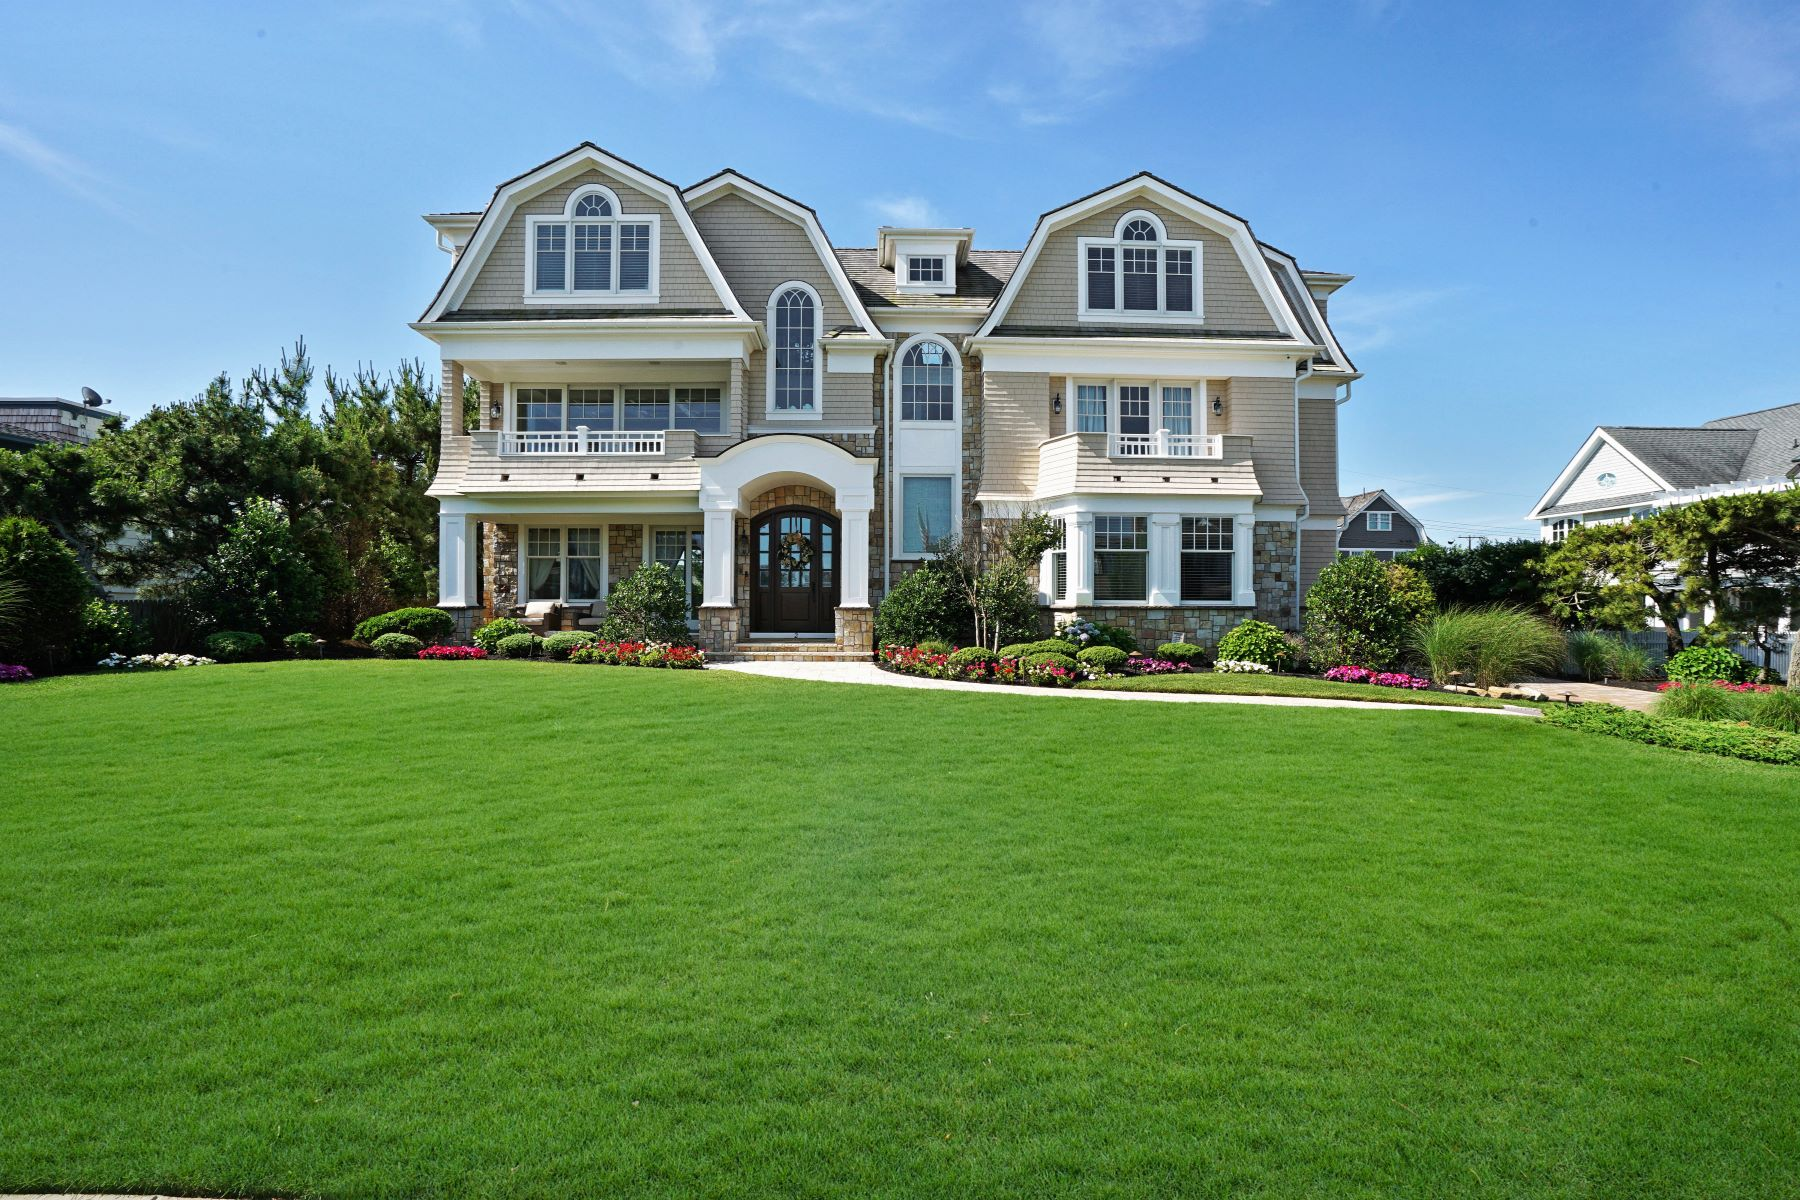 Single Family Homes for Sale at Perfection Knows No Boundaries 2 Neptune Place, Sea Girt, New Jersey 08750 United States